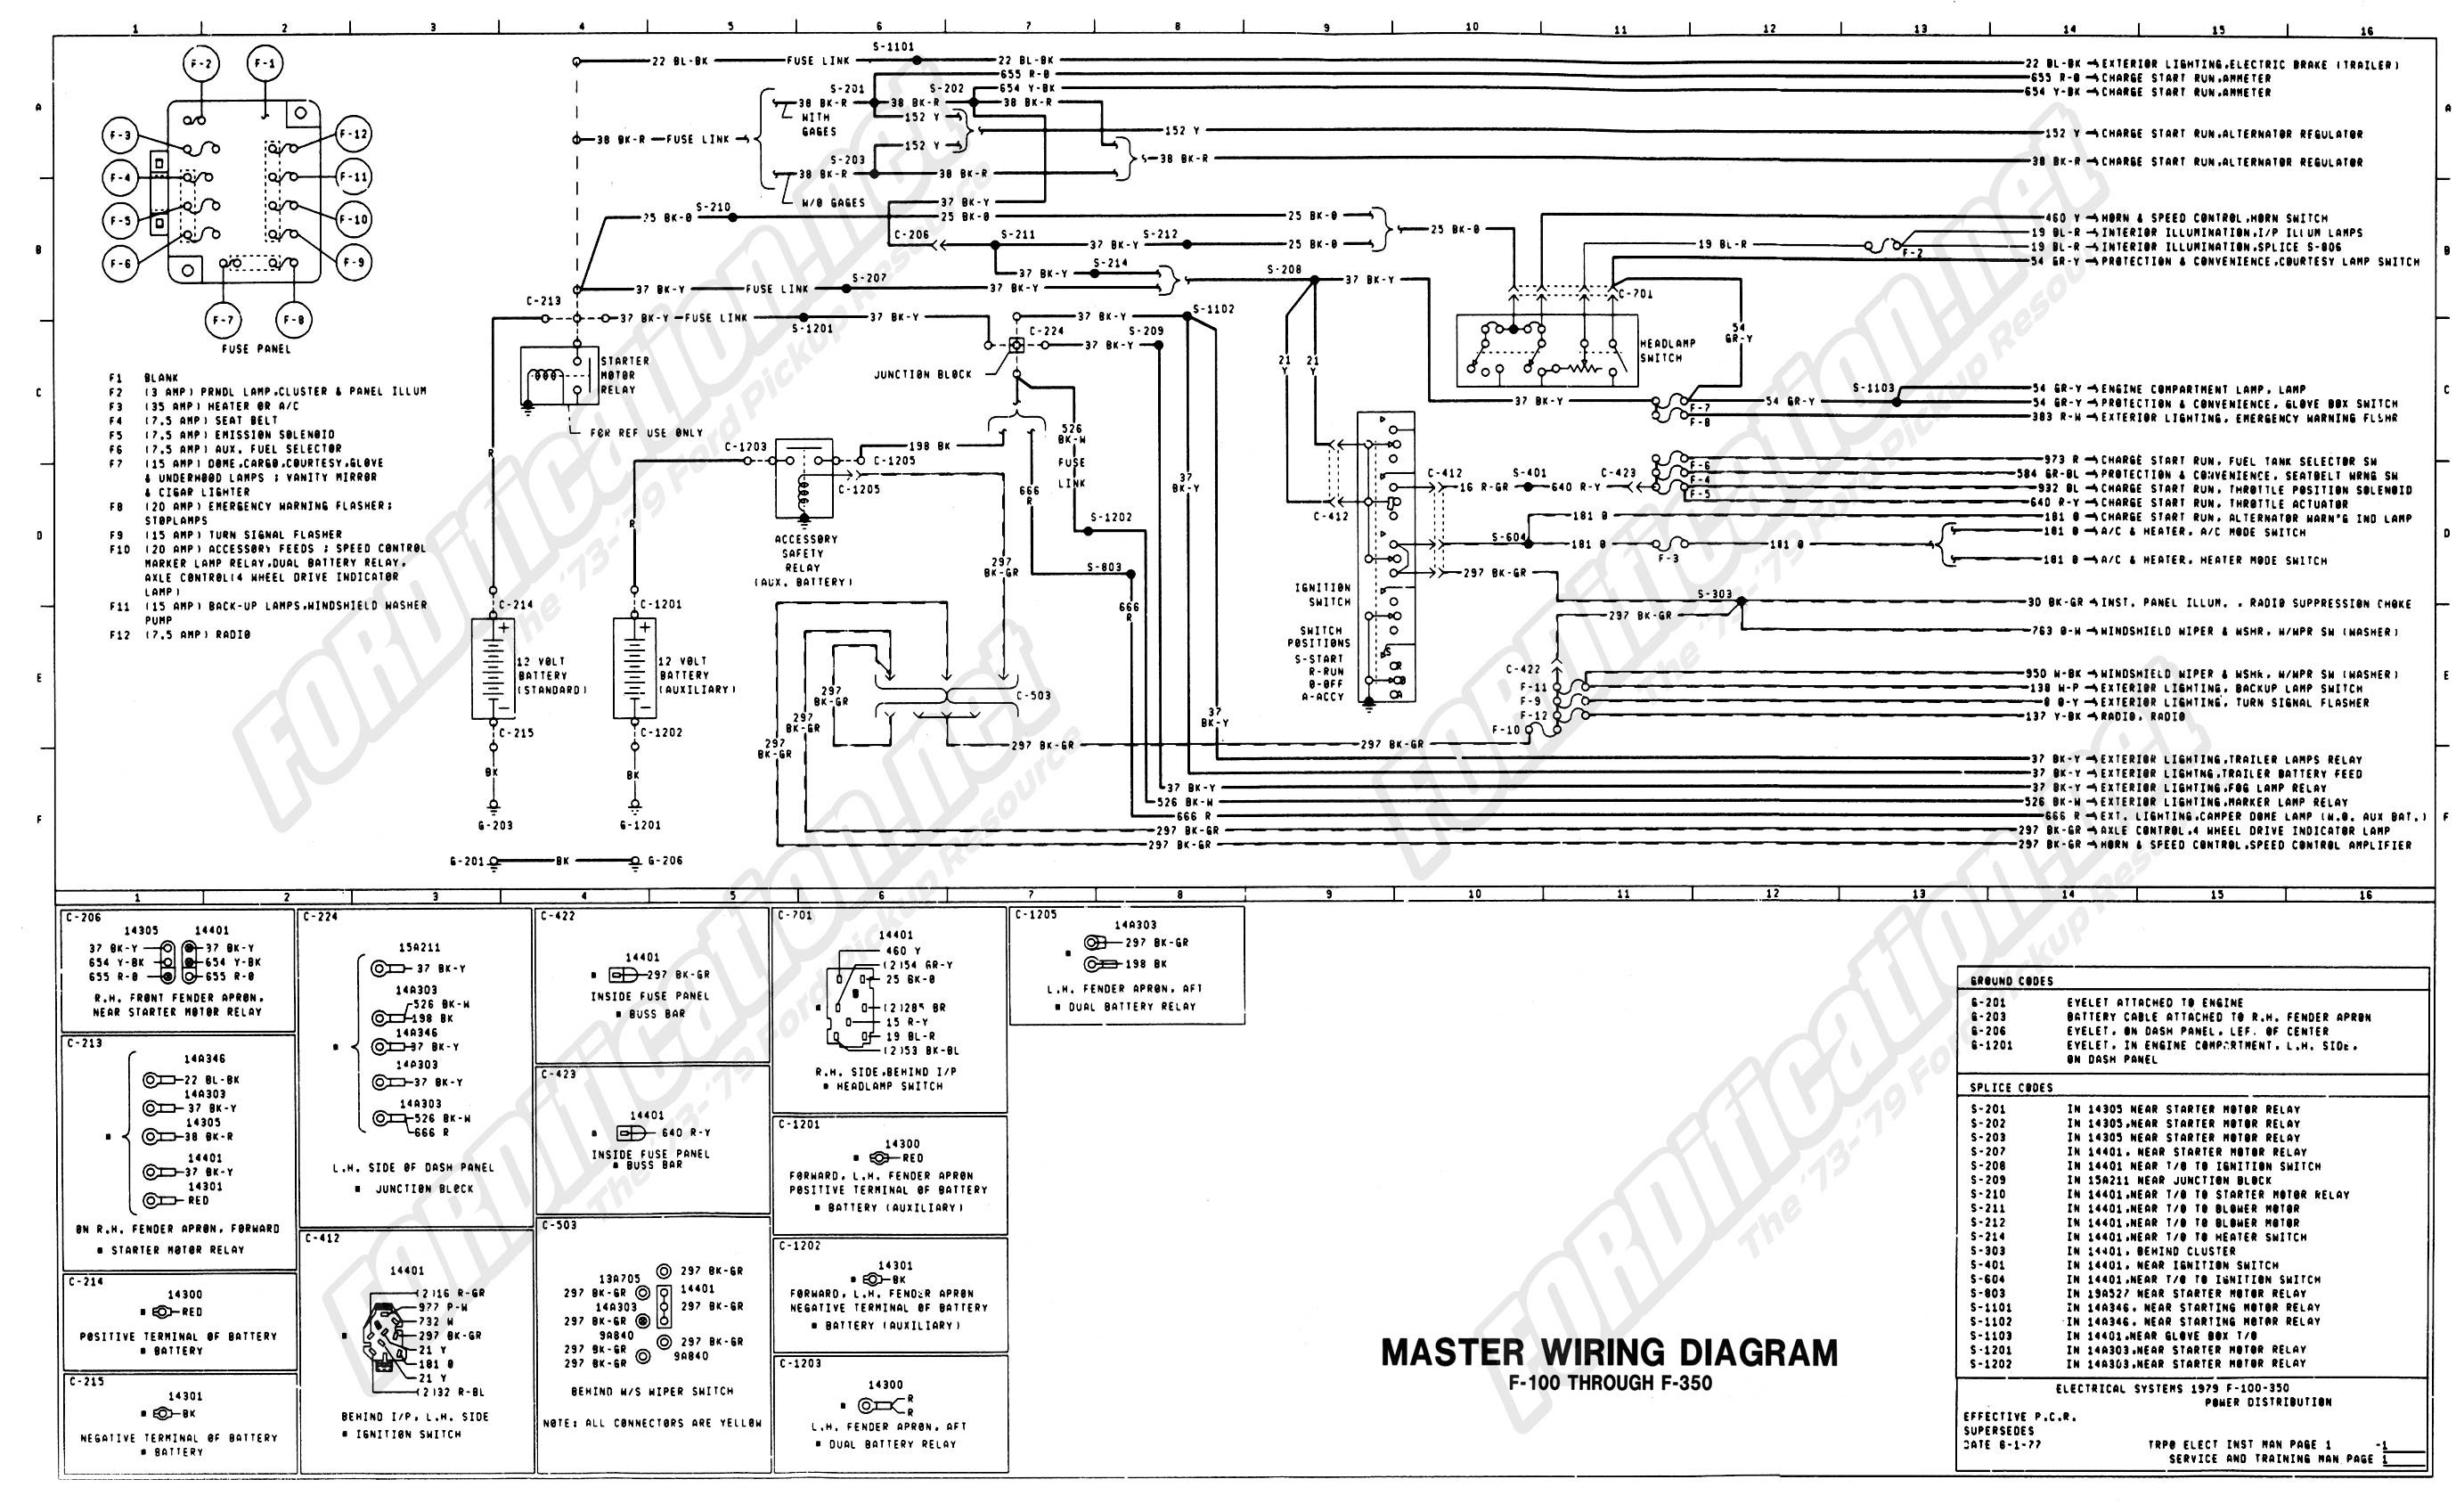 Printable Trailer Lights Wiring Diagram Electrical For Truck To Dodge Ram 2500 Plug Calico Trailers